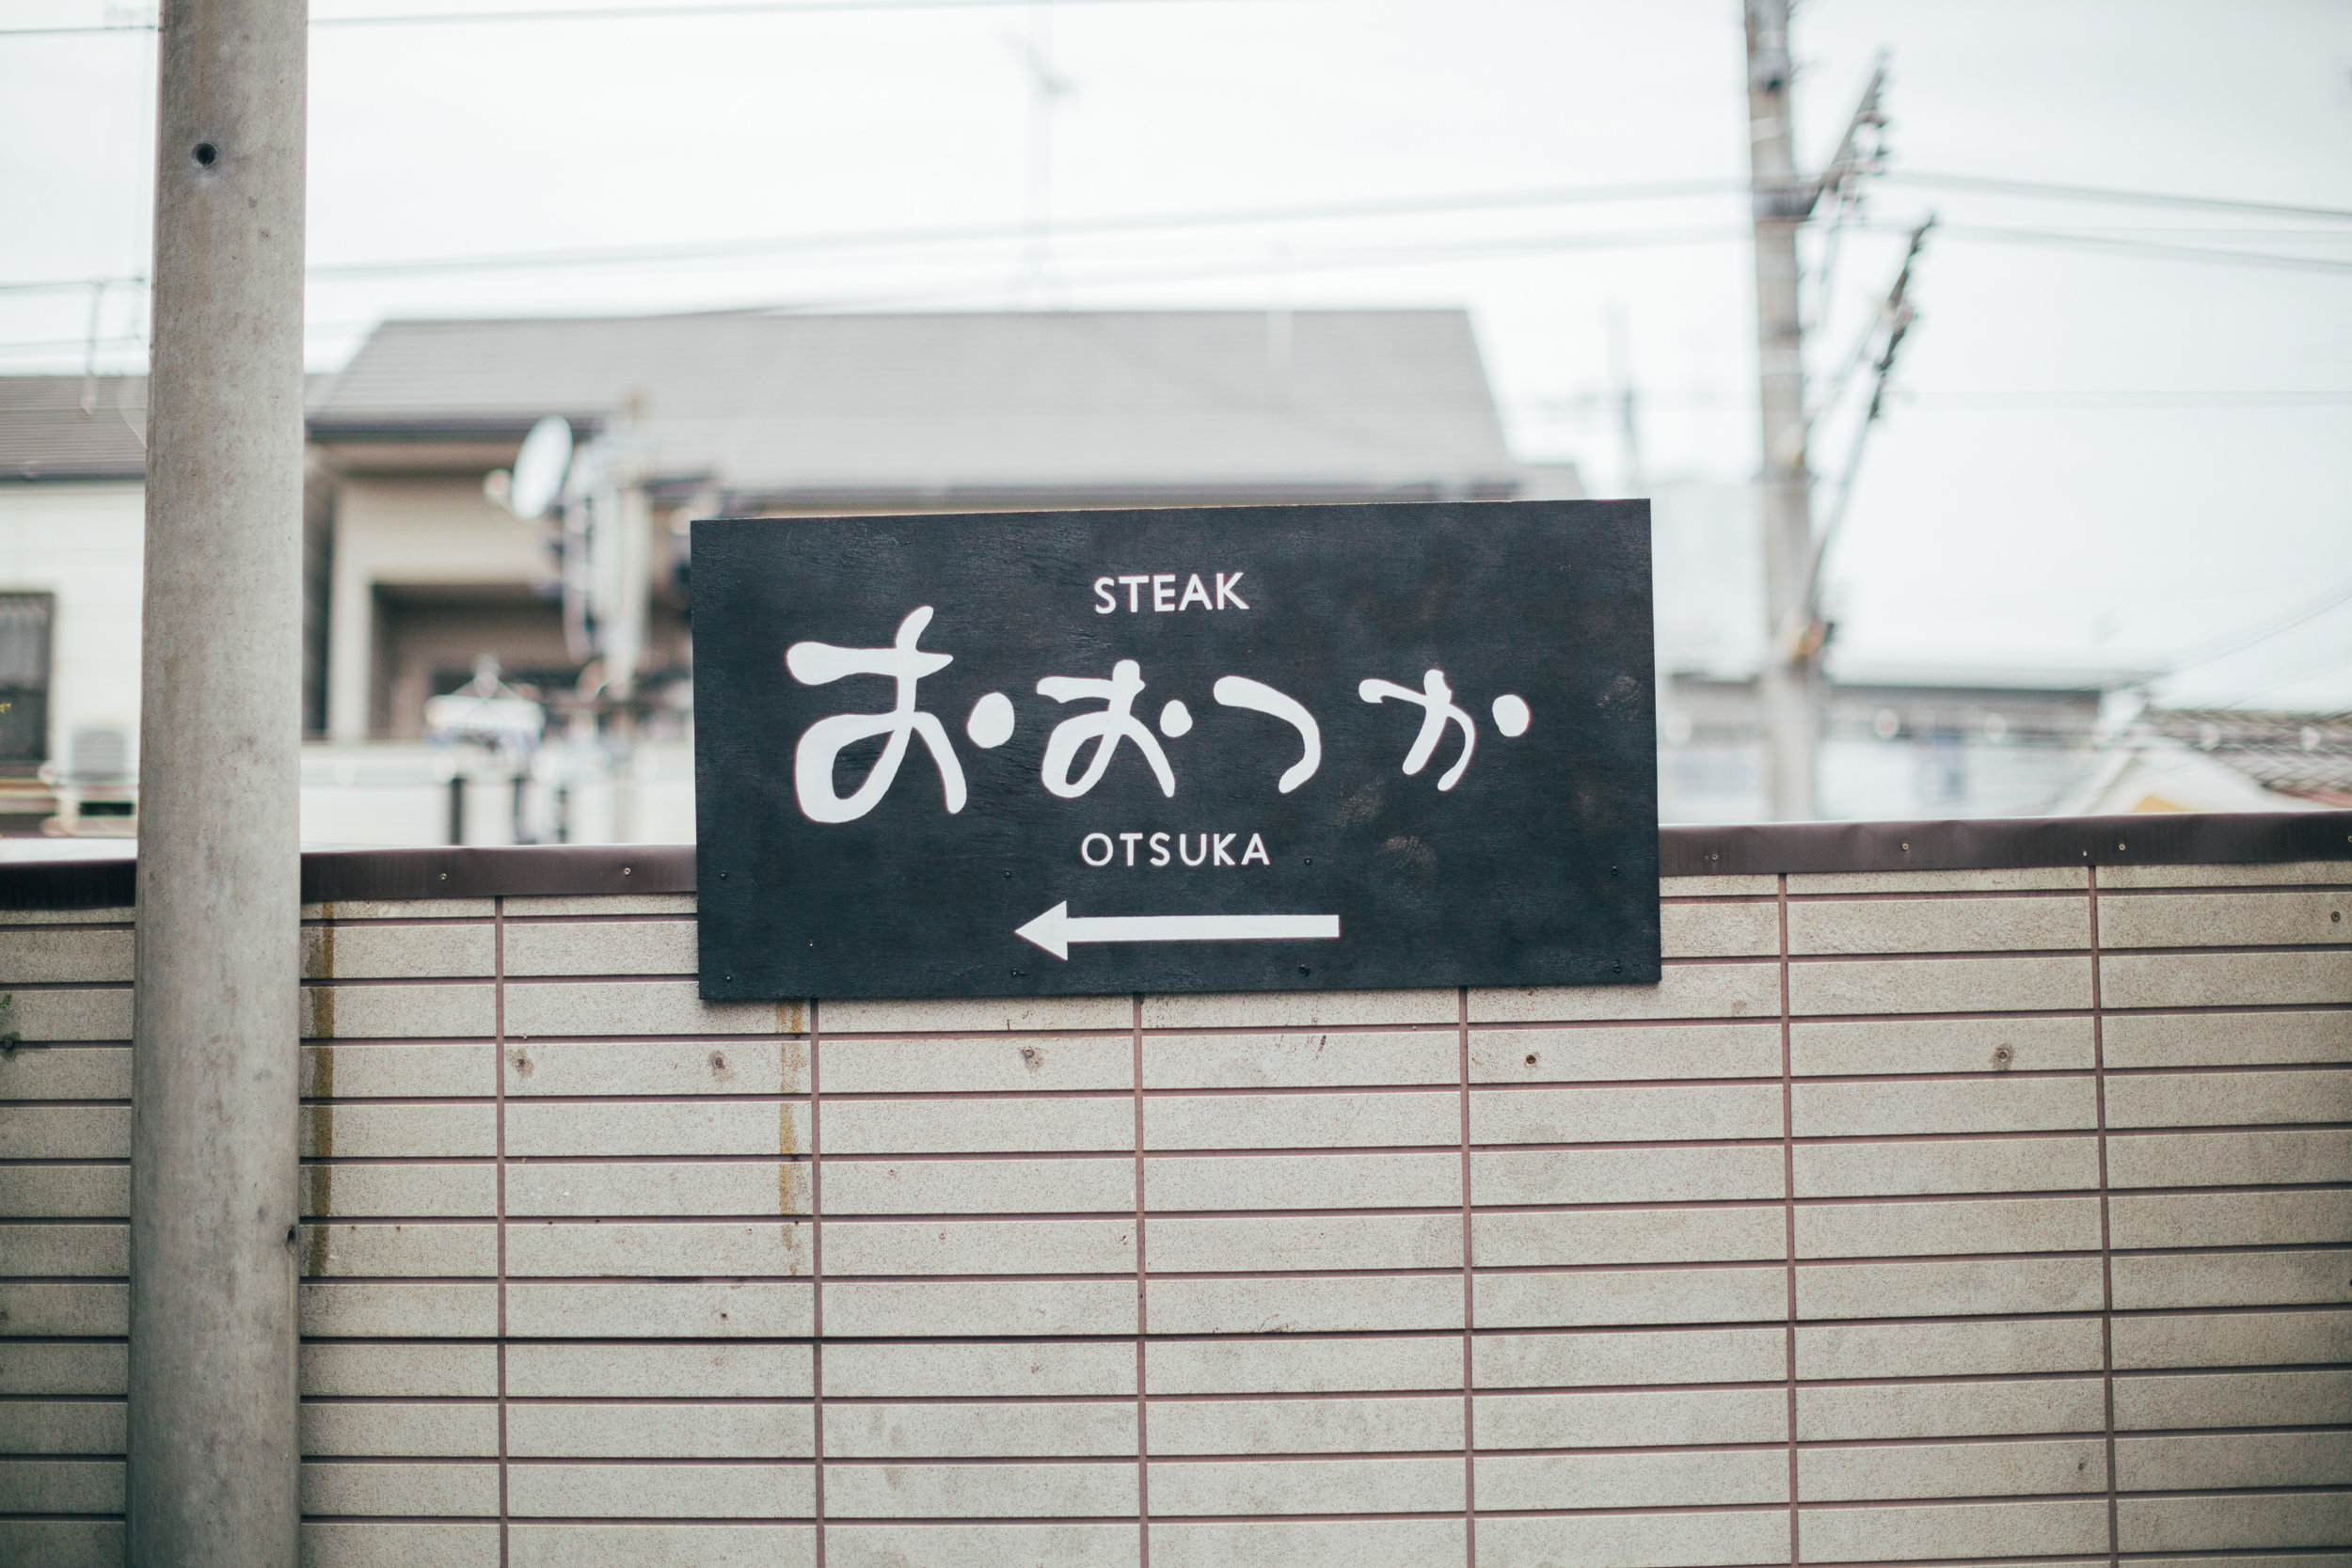 Finished off our short trip to Arashiyama by heading to Steak Otsuka for lunch. Map is just below with slightly more information.